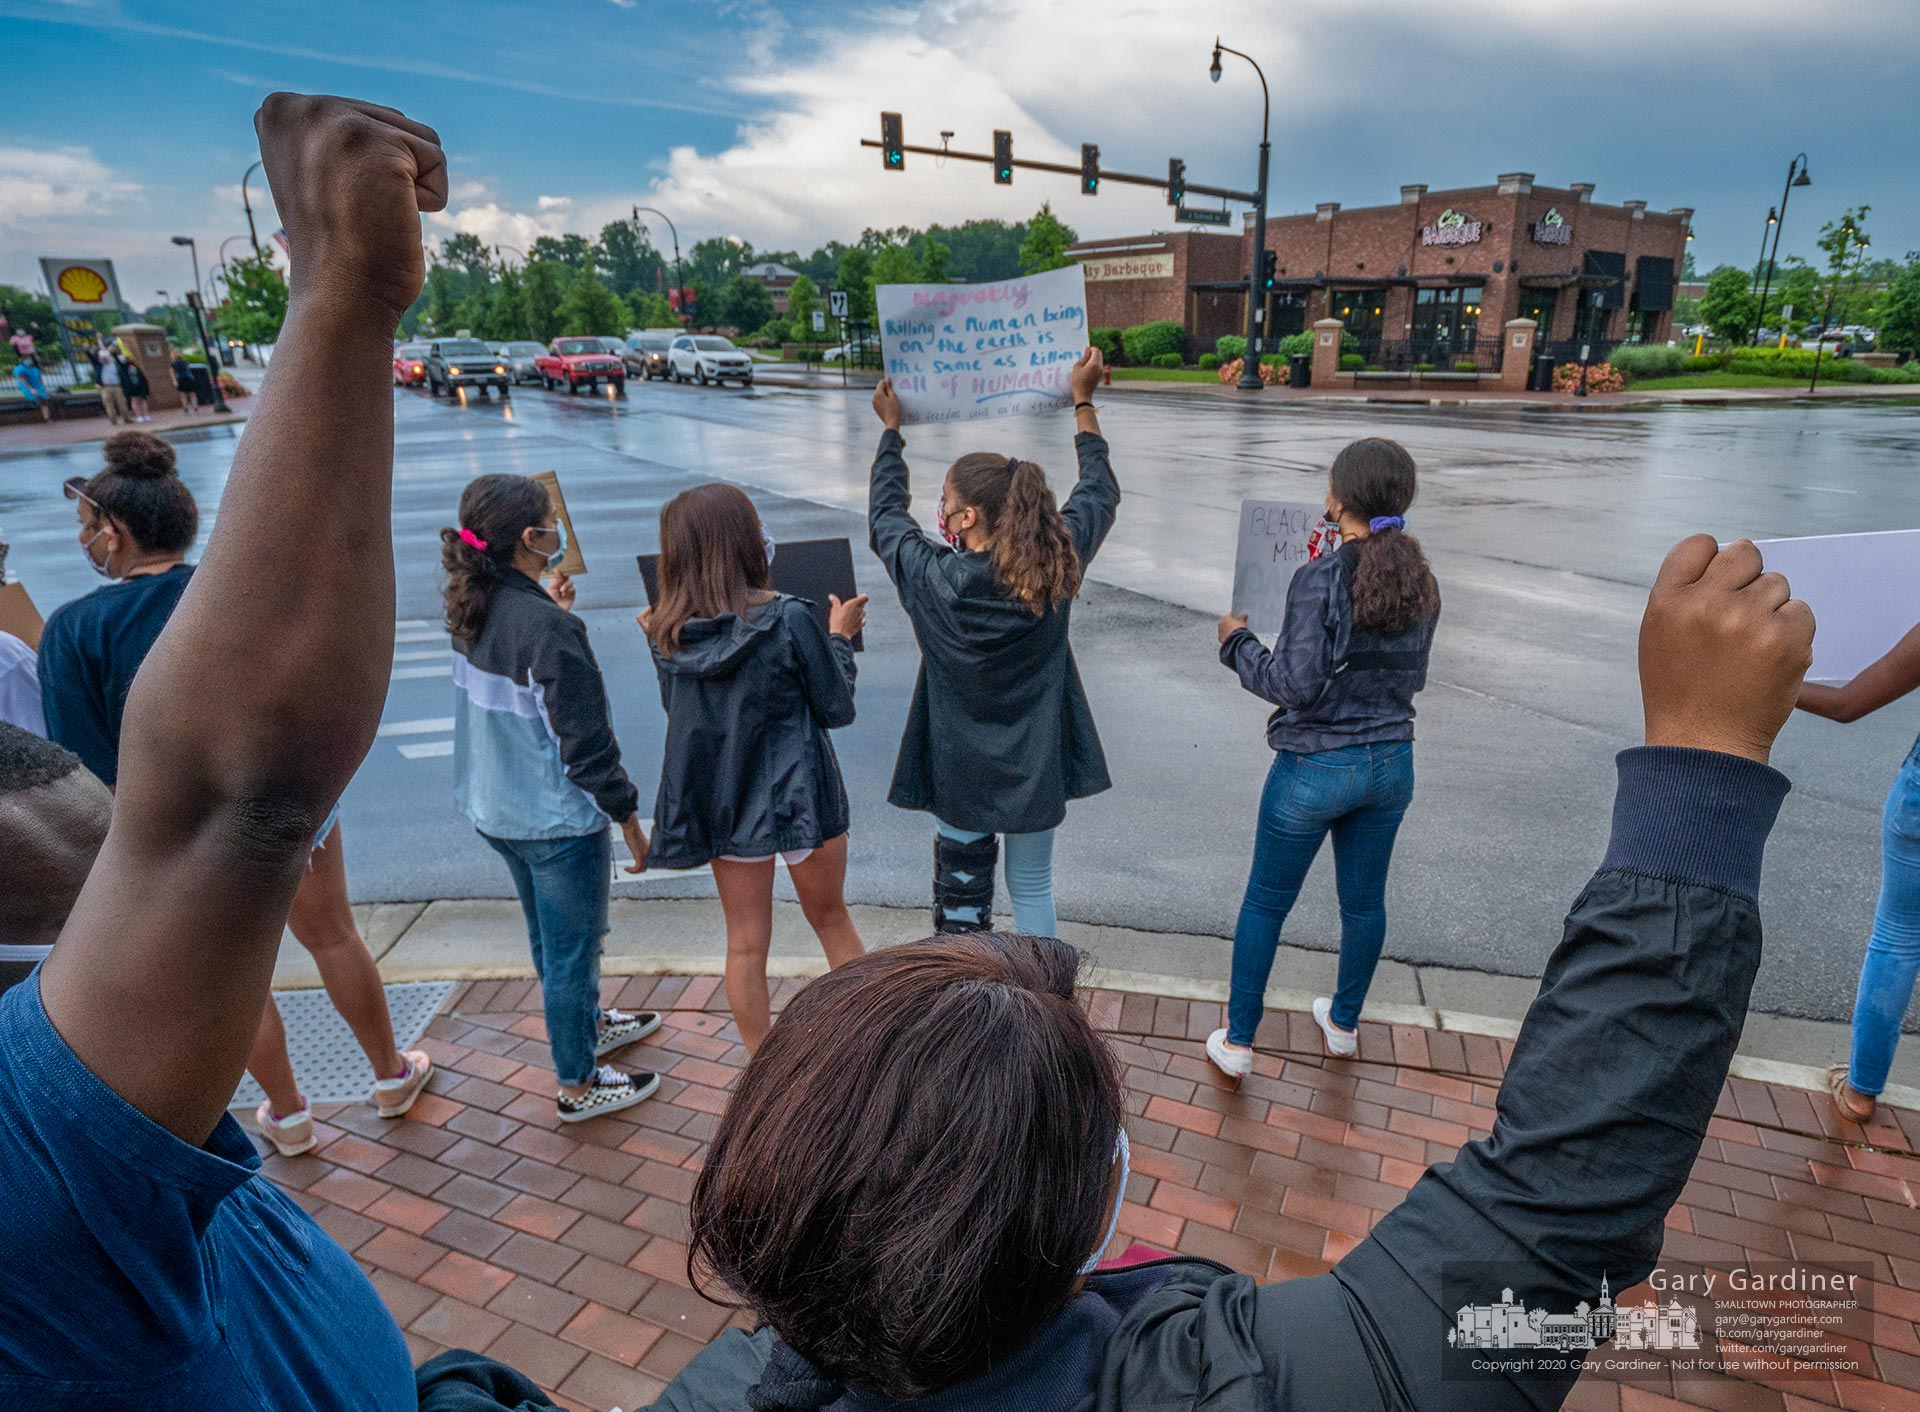 A small crowd stood at State and Schrock Thursday following a larger group of protesters in Uptown rallying in a protest supporting the Black Lives Movement and recent protest activity across the country. My Final Photo for June 4, 2020.